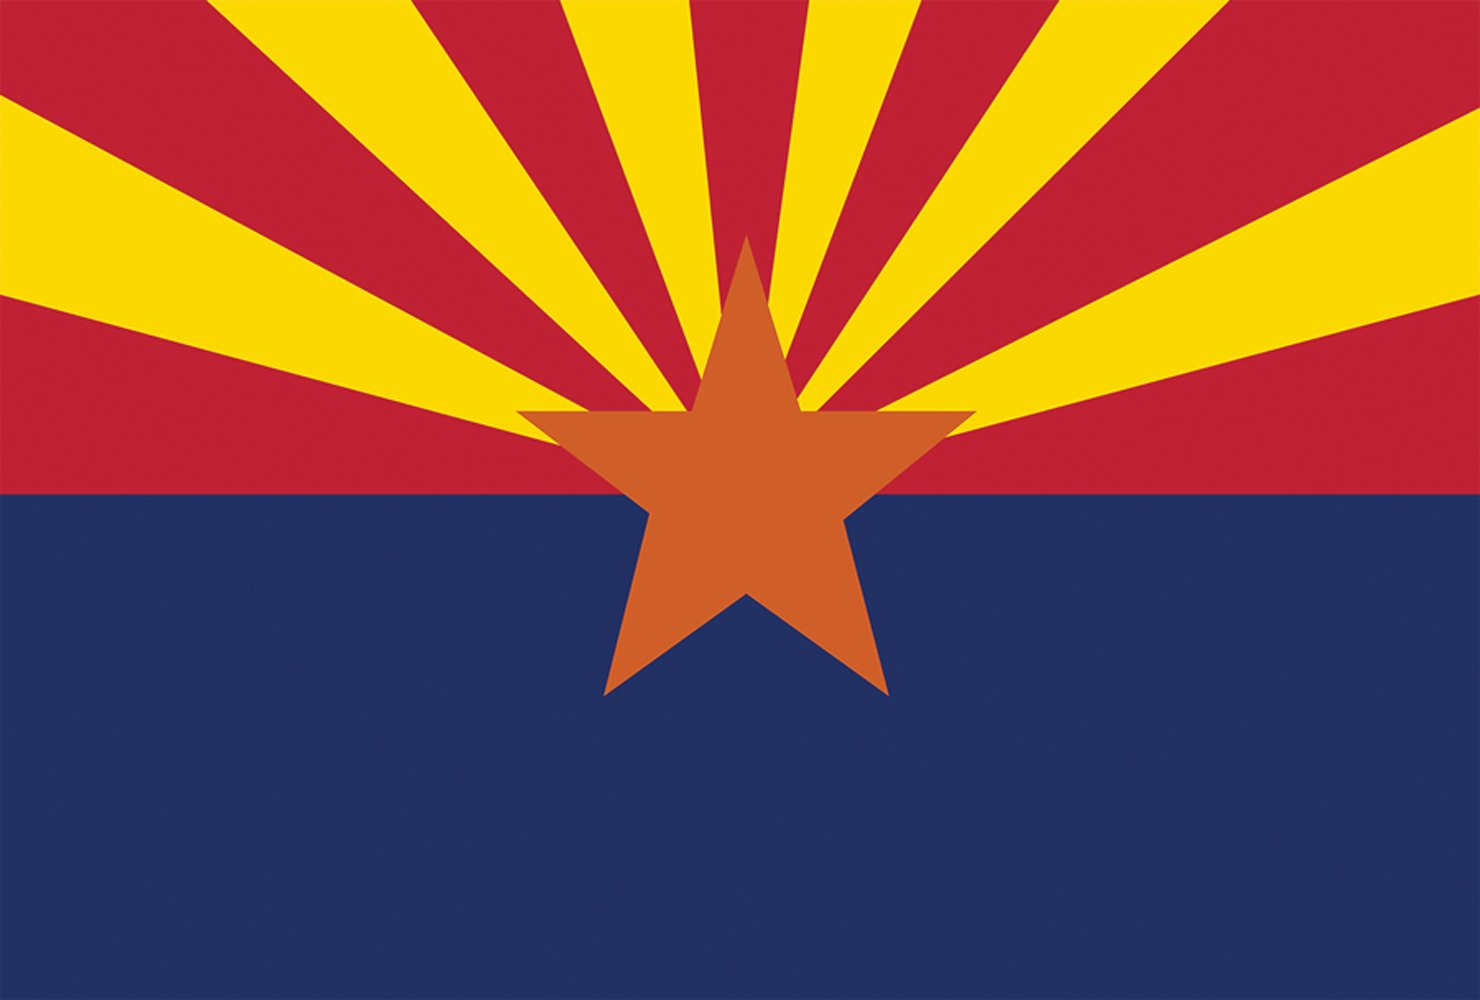 Toland Home Garden Arizona State Flag 12.5 x 18 Inch Decorative USA Garden Flag